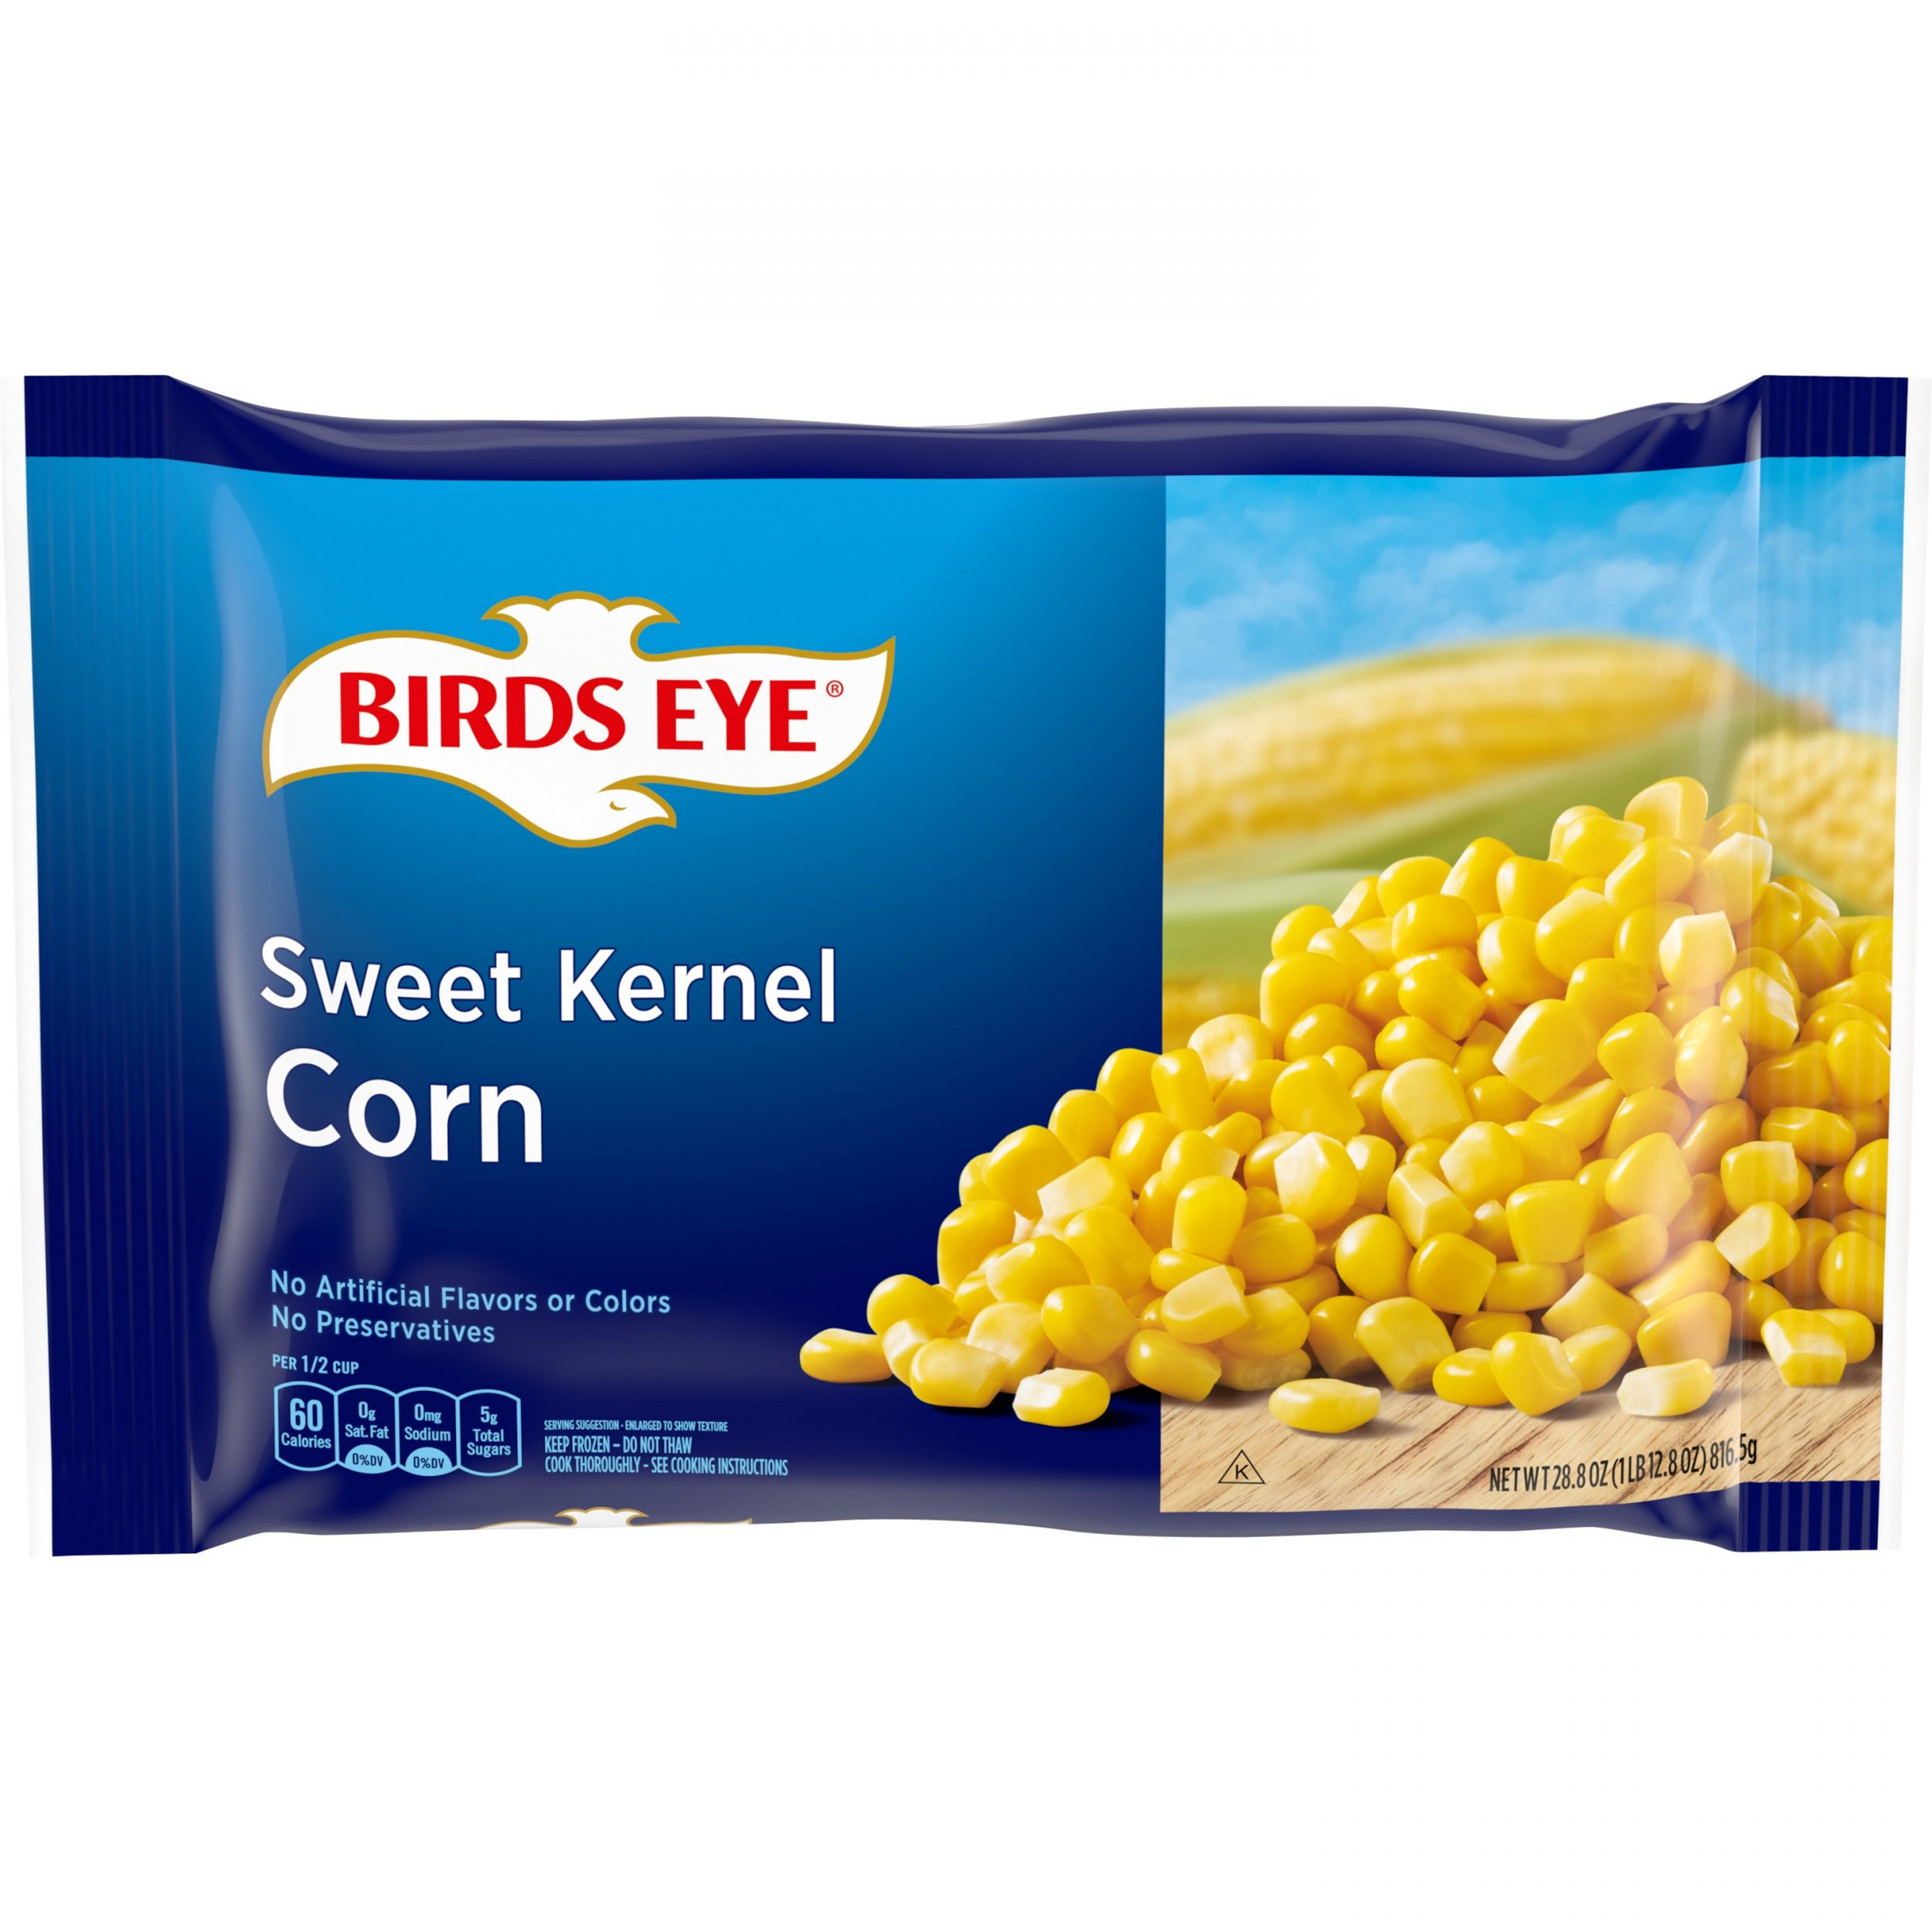 Birds Eye® Sweet Kernel Corn 28.8 oz. Package